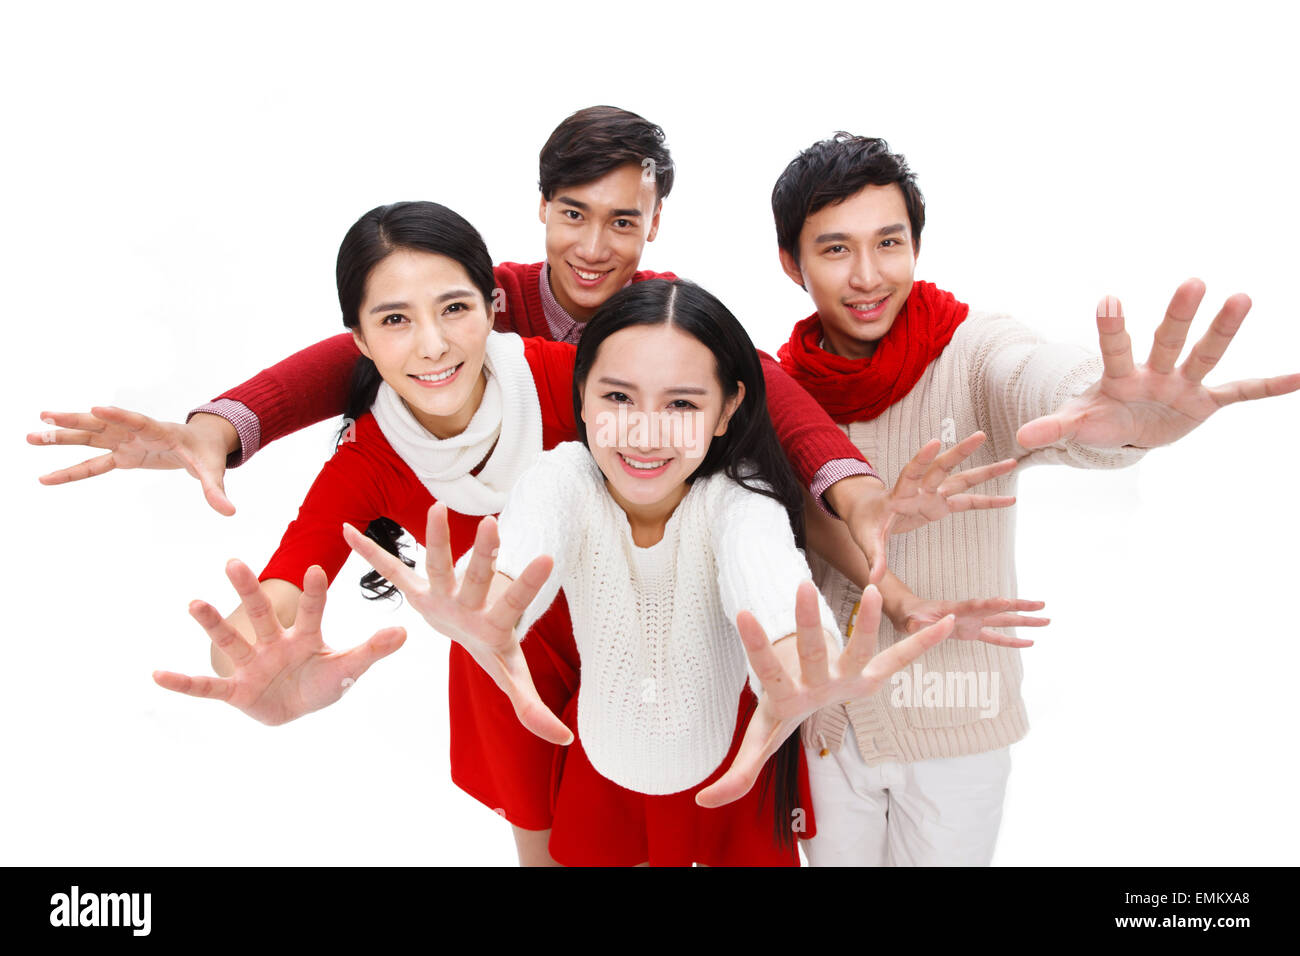 Young men and women fashion do grasping the hand gesture - Stock Image